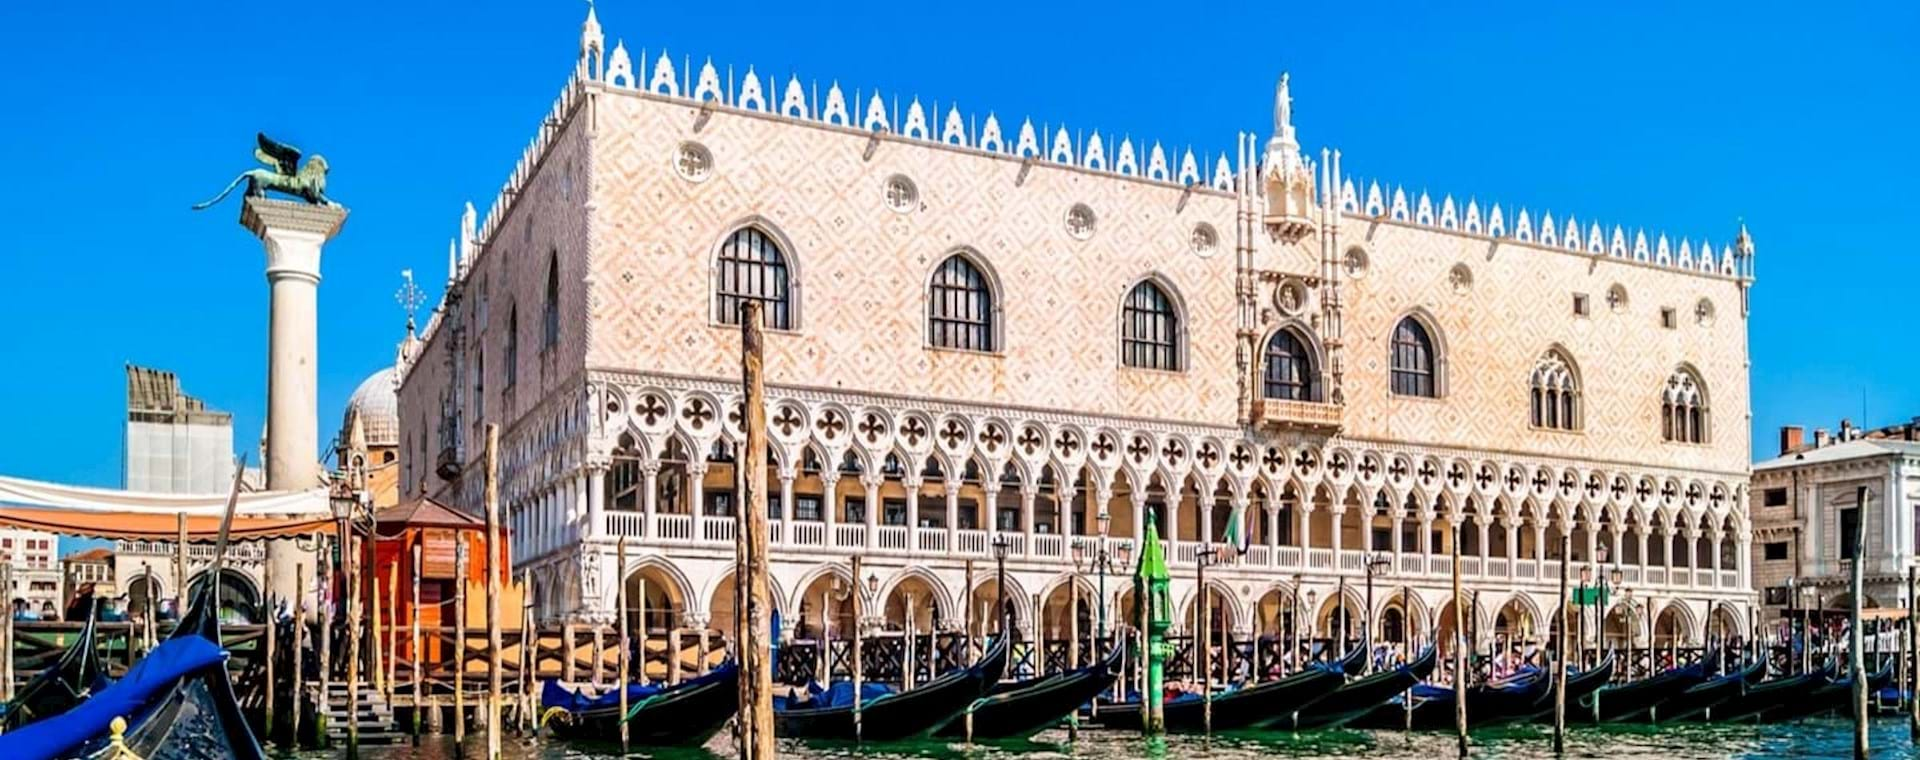 Doge's Palace Secret Itineraries & St. Mark's Basilica with Terraces